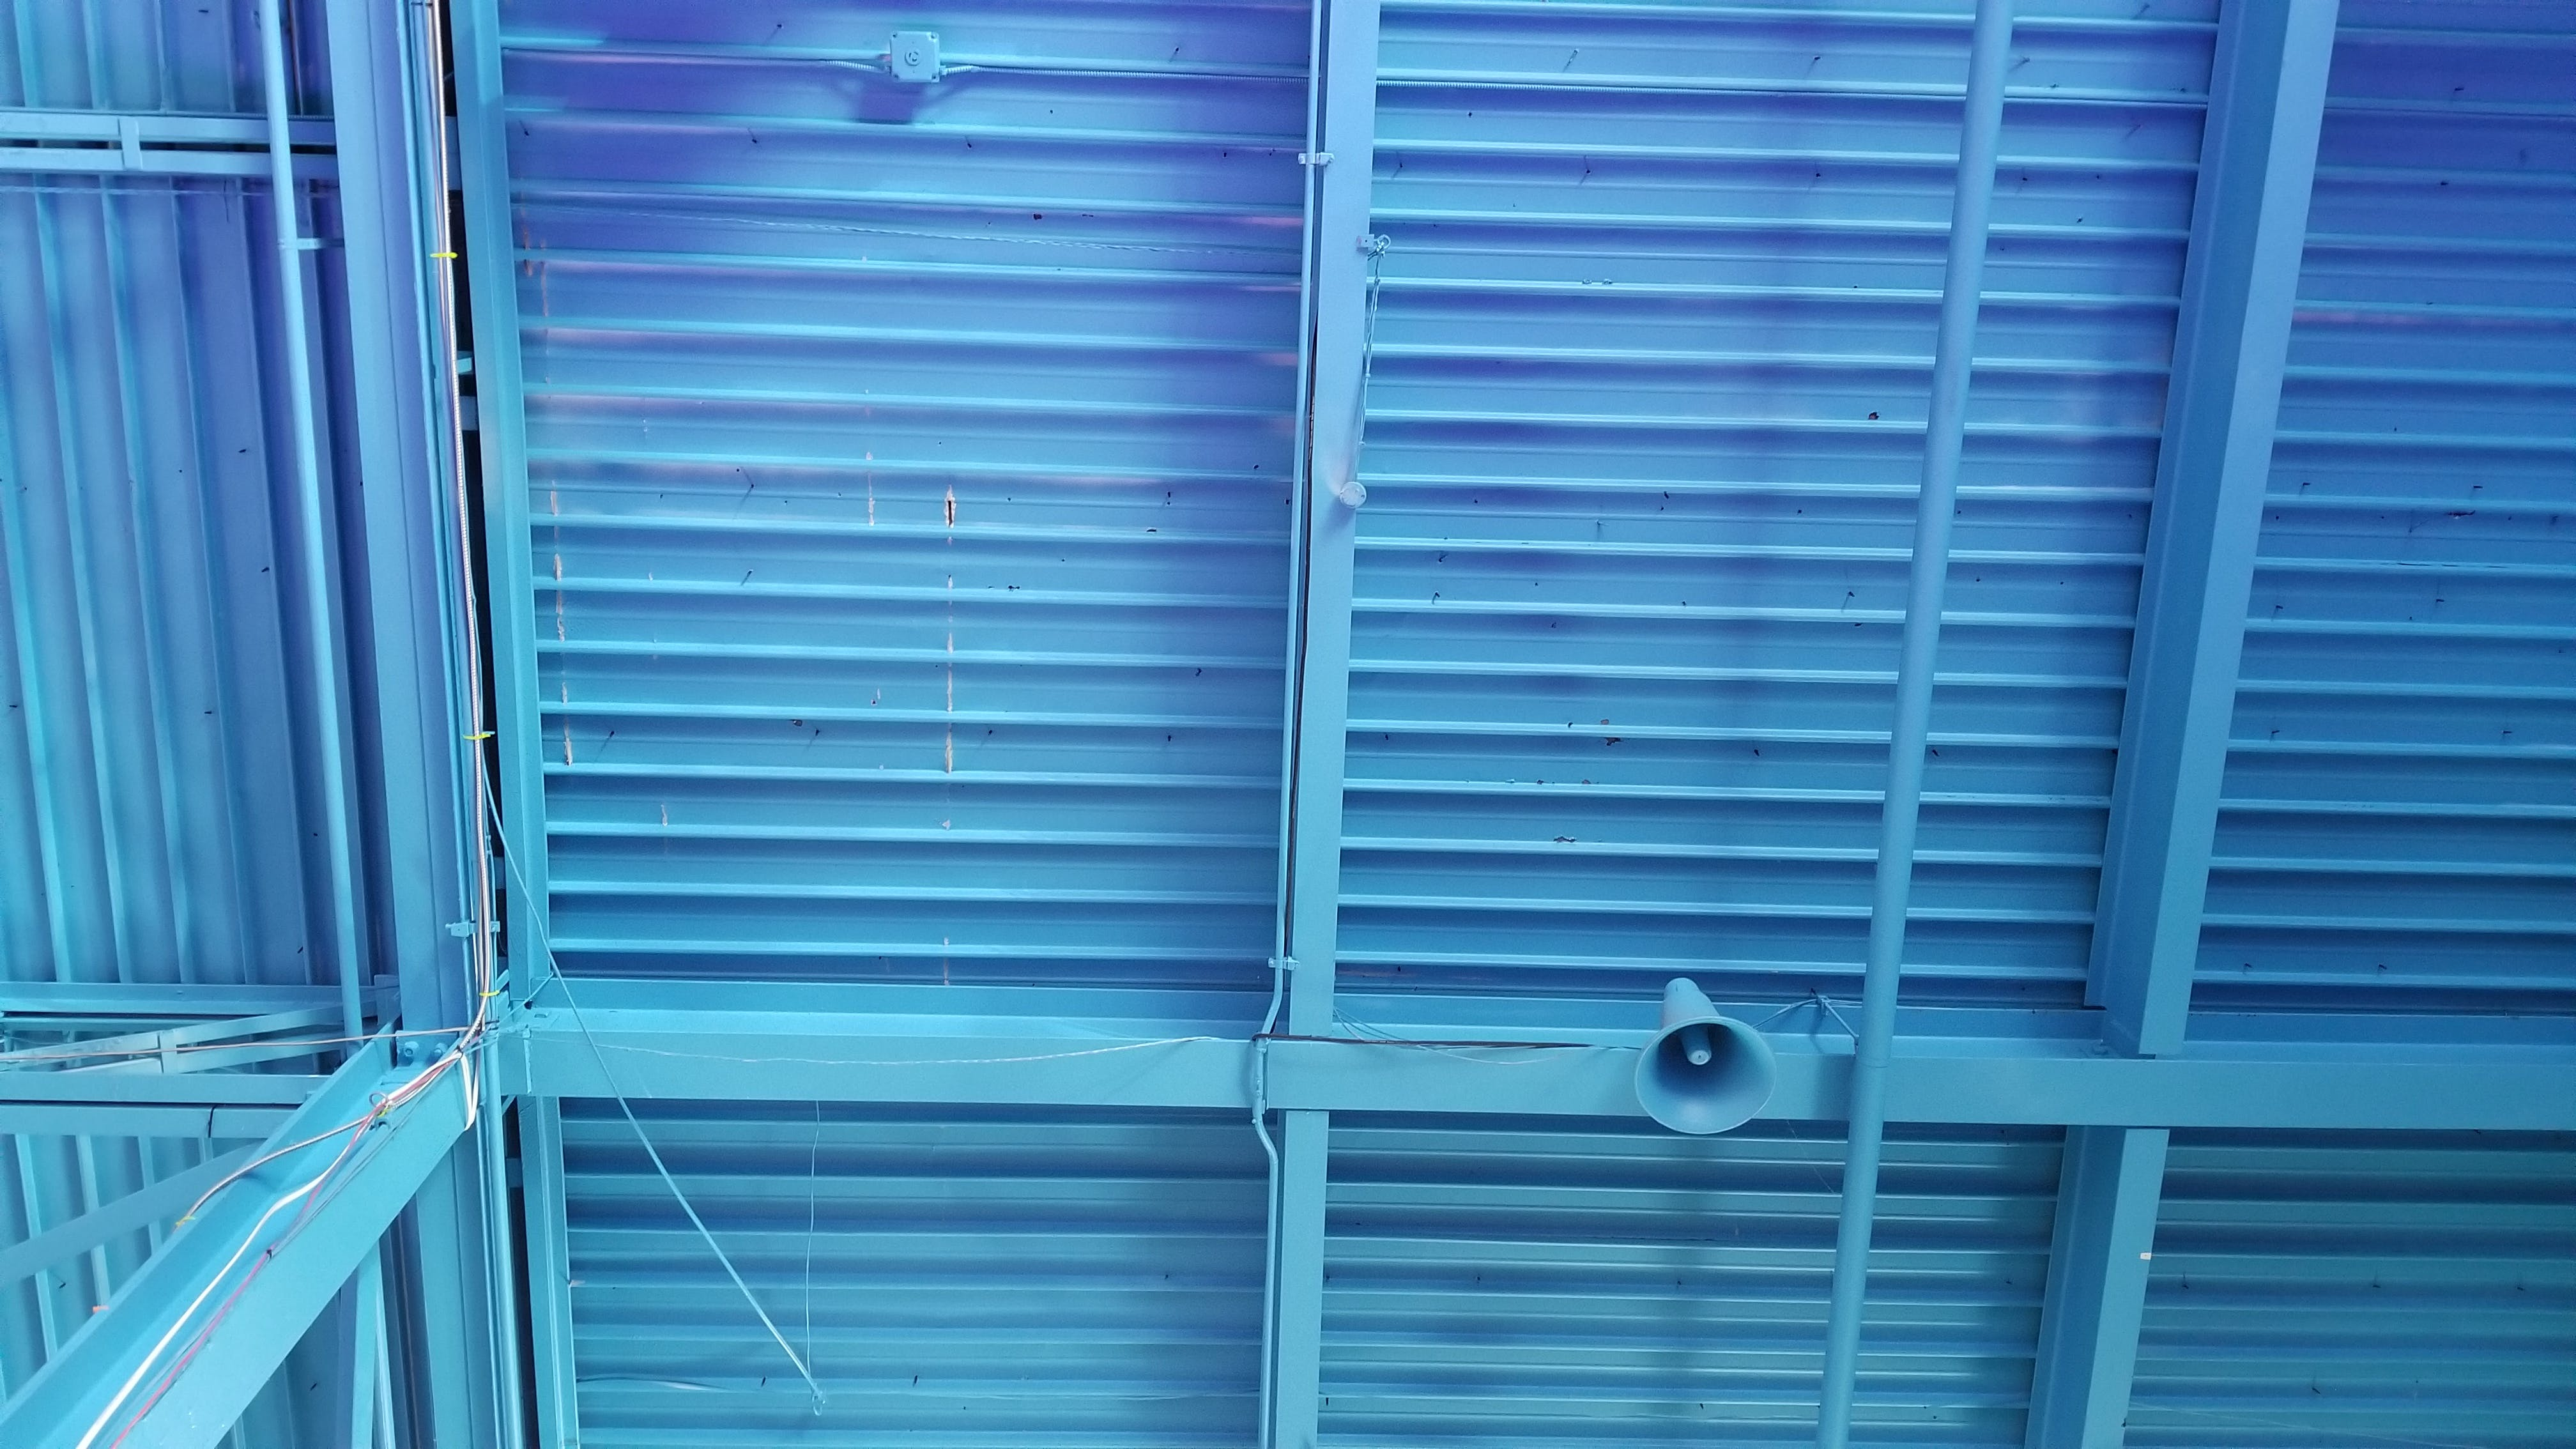 Free stock photo of Blue ceiling, ceiling